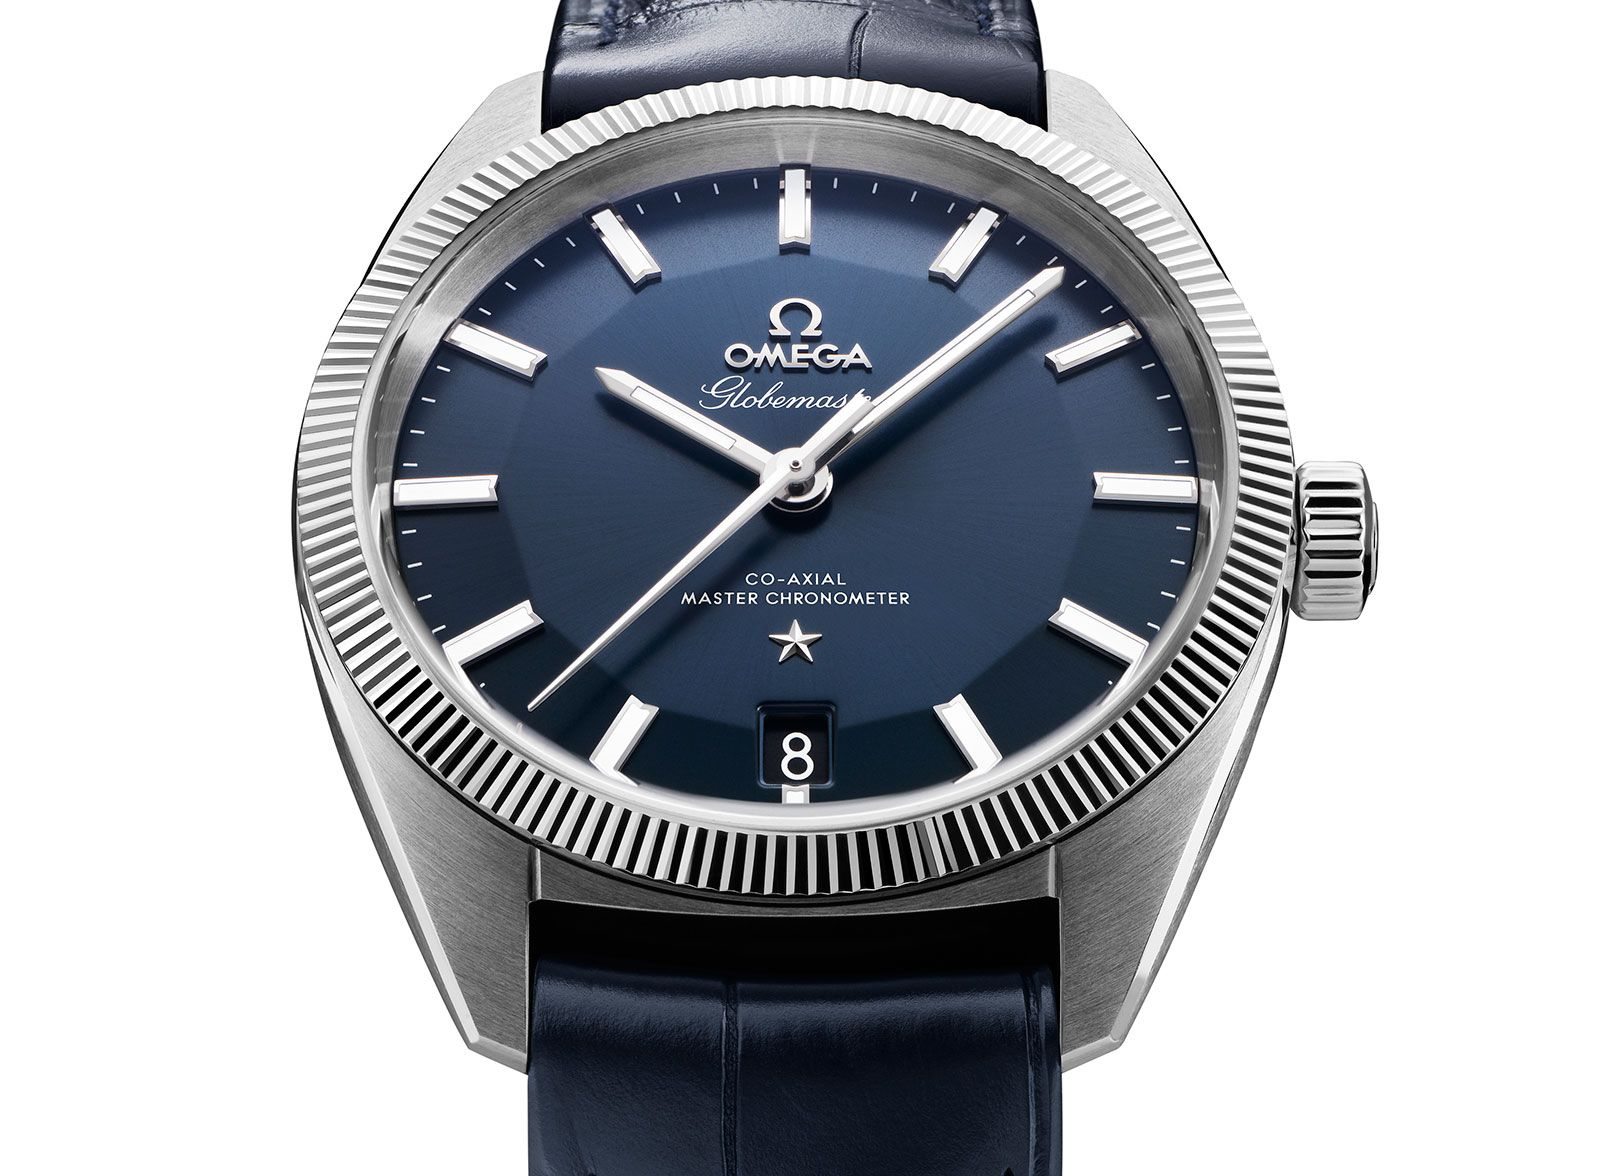 Watches by SJX: Introducing The Omega Globemaster, A Modern